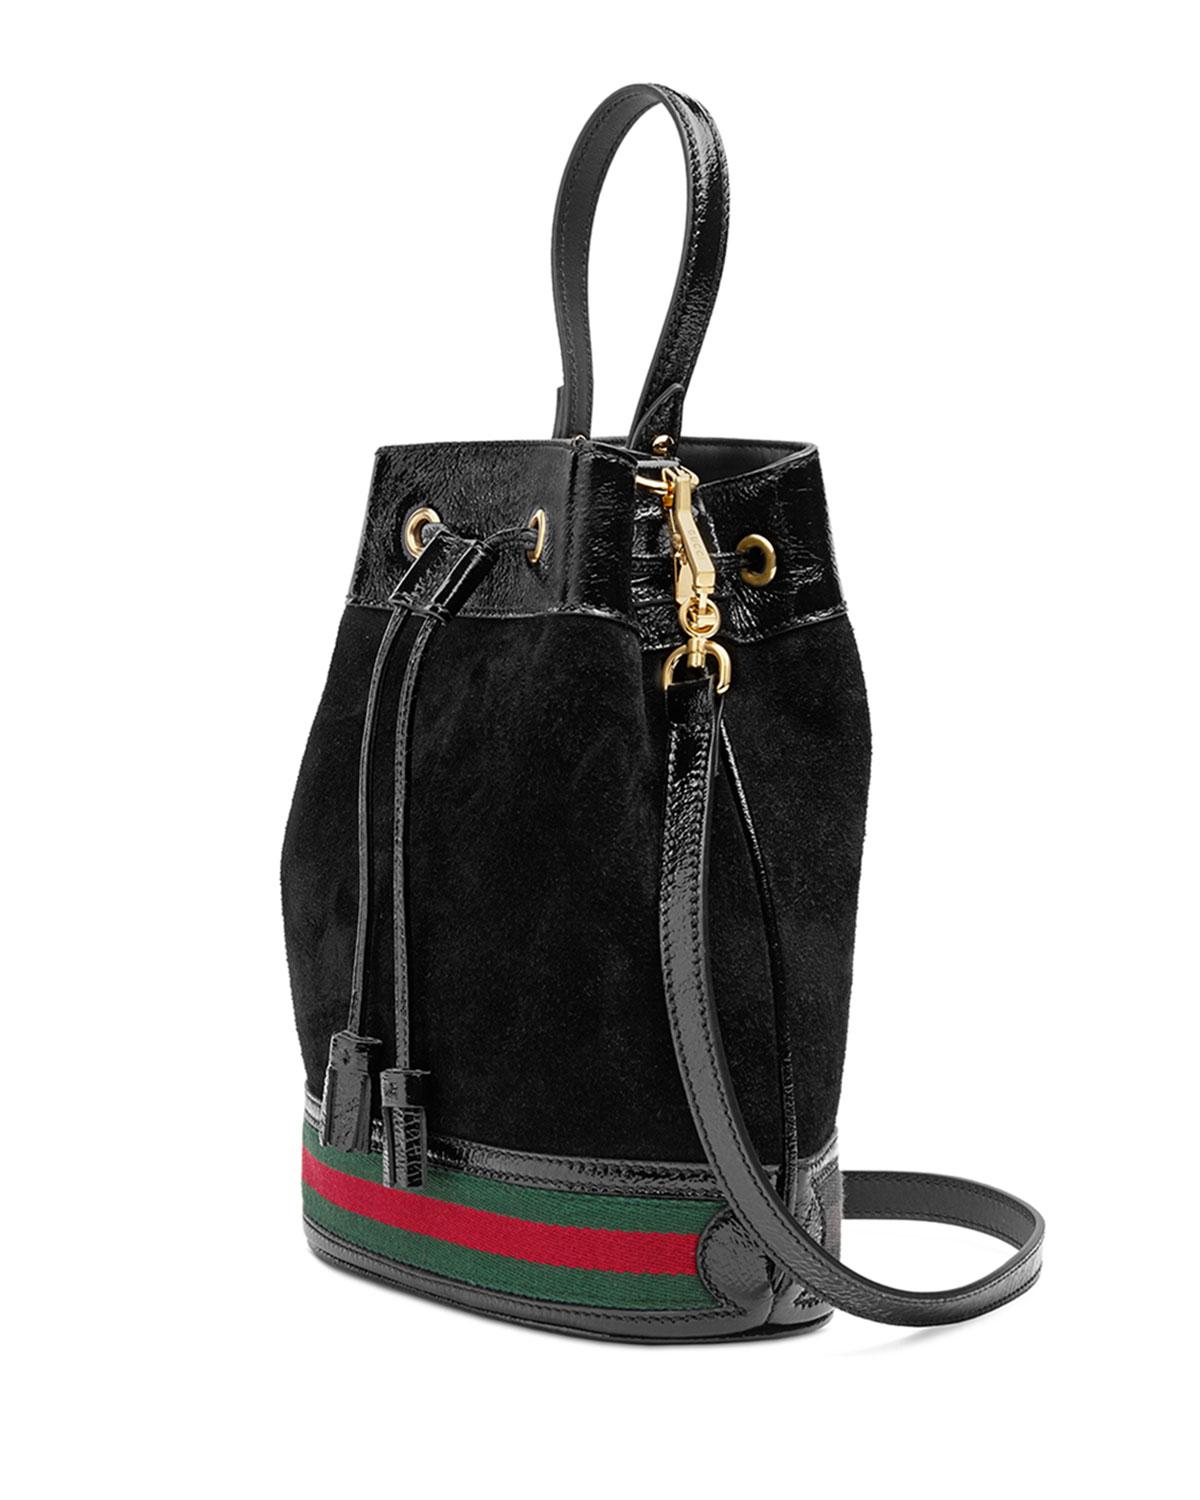 Lyst - Gucci Mini Suede Bucket Bag in Black b232ec3eea59c